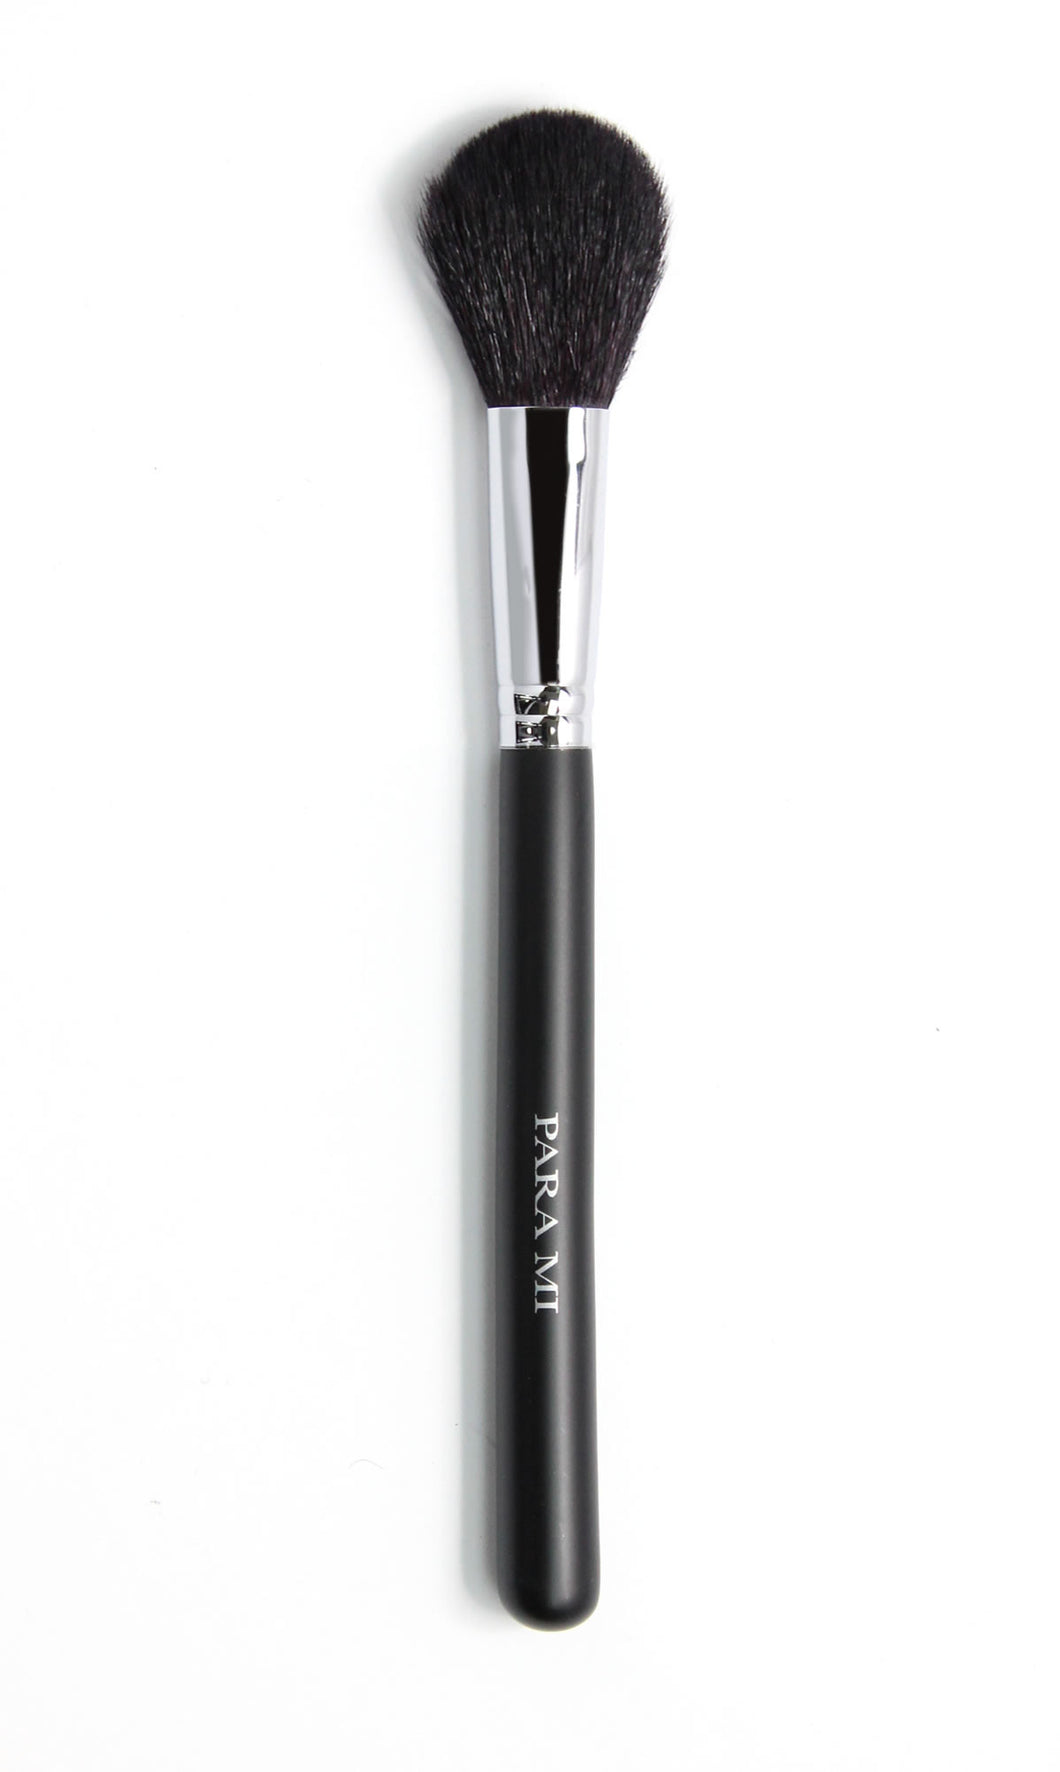 Blush Brush 563, a black and chrome brush, about 10 inches long  with the PARA MI logo printed on the handle.